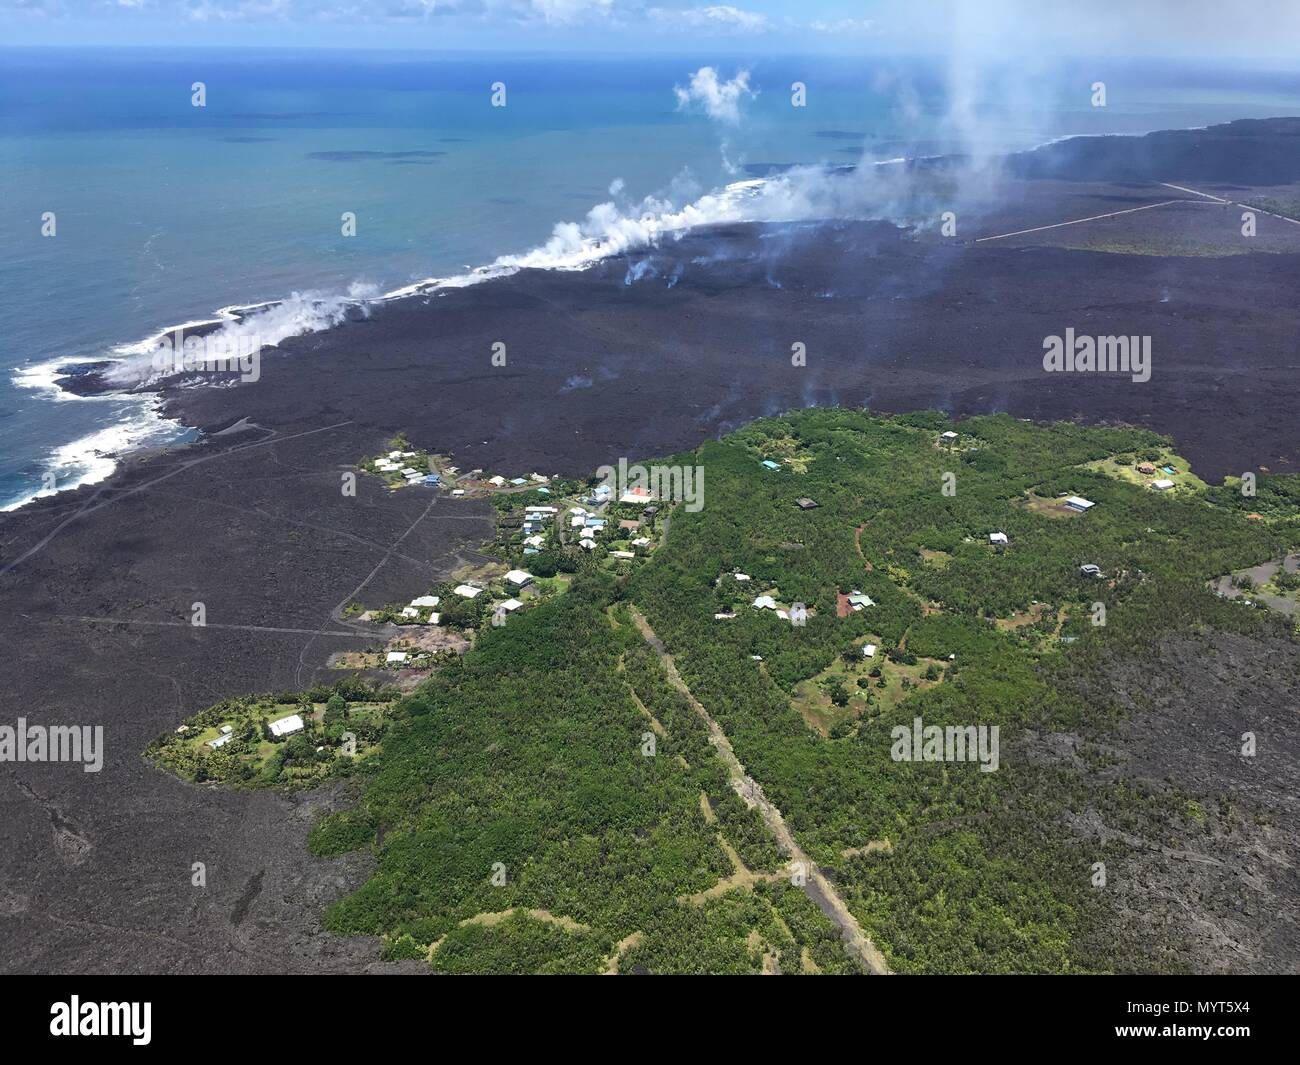 Hawaii, USA. 6th June, 2018. A view of the remains of Vacationland and Kapoho Bay after lava flows filled the bay and destroyed the forest and homes from the eruption of the Kilauea volcano June 6, 2018 in Hawaii. The recent eruption continues destroying homes, forcing evacuations and spewing lava and poison gas on the Big Island of Hawaii. Credit: Planetpix/Alamy Live News - Stock Image